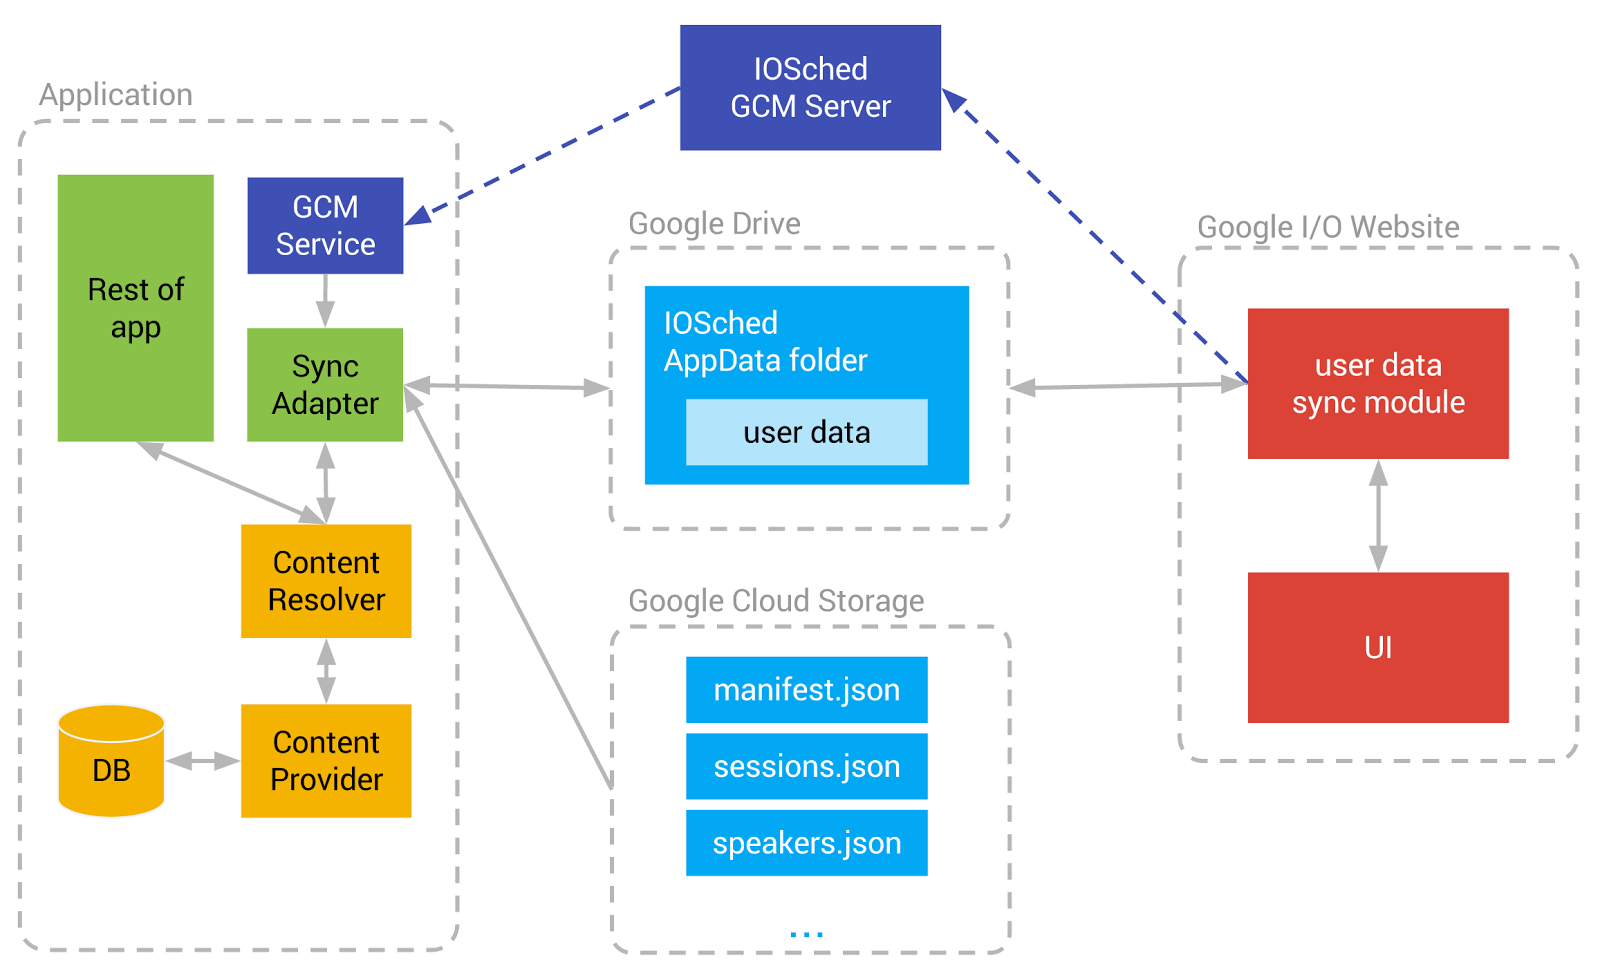 Android Developers Blog: Conference Data Sync and GCM in the Google